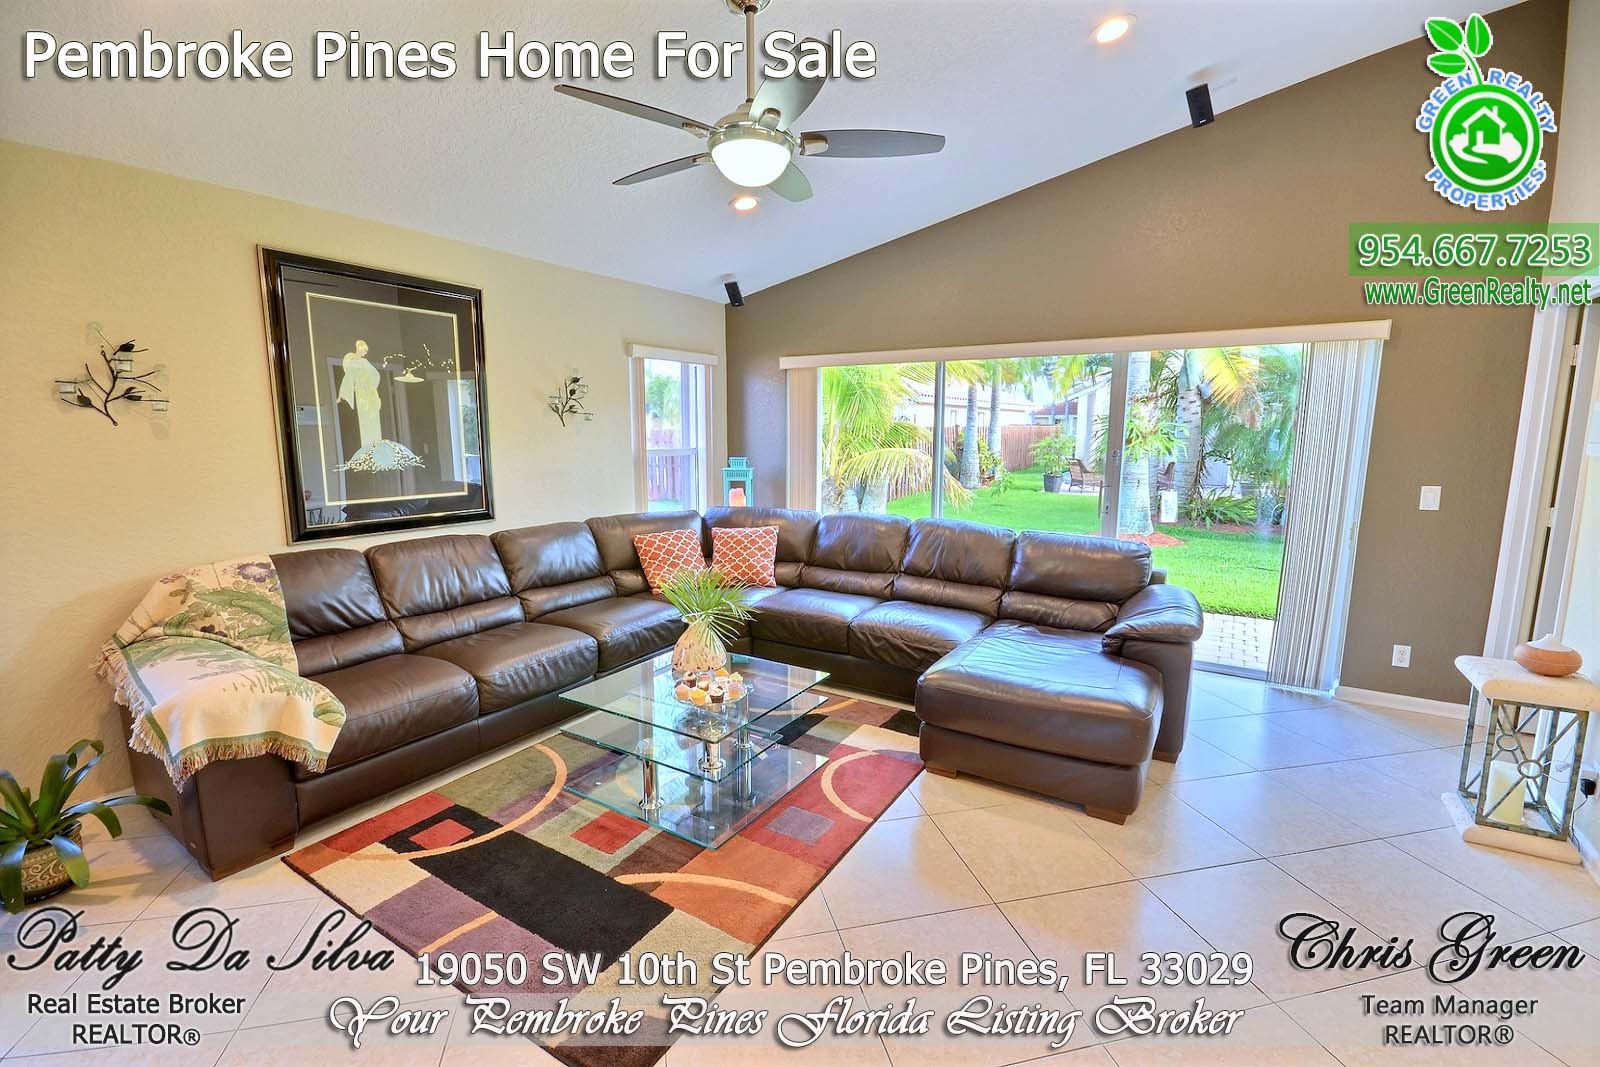 16 Homes For Sale in Pembroke Pines (5)